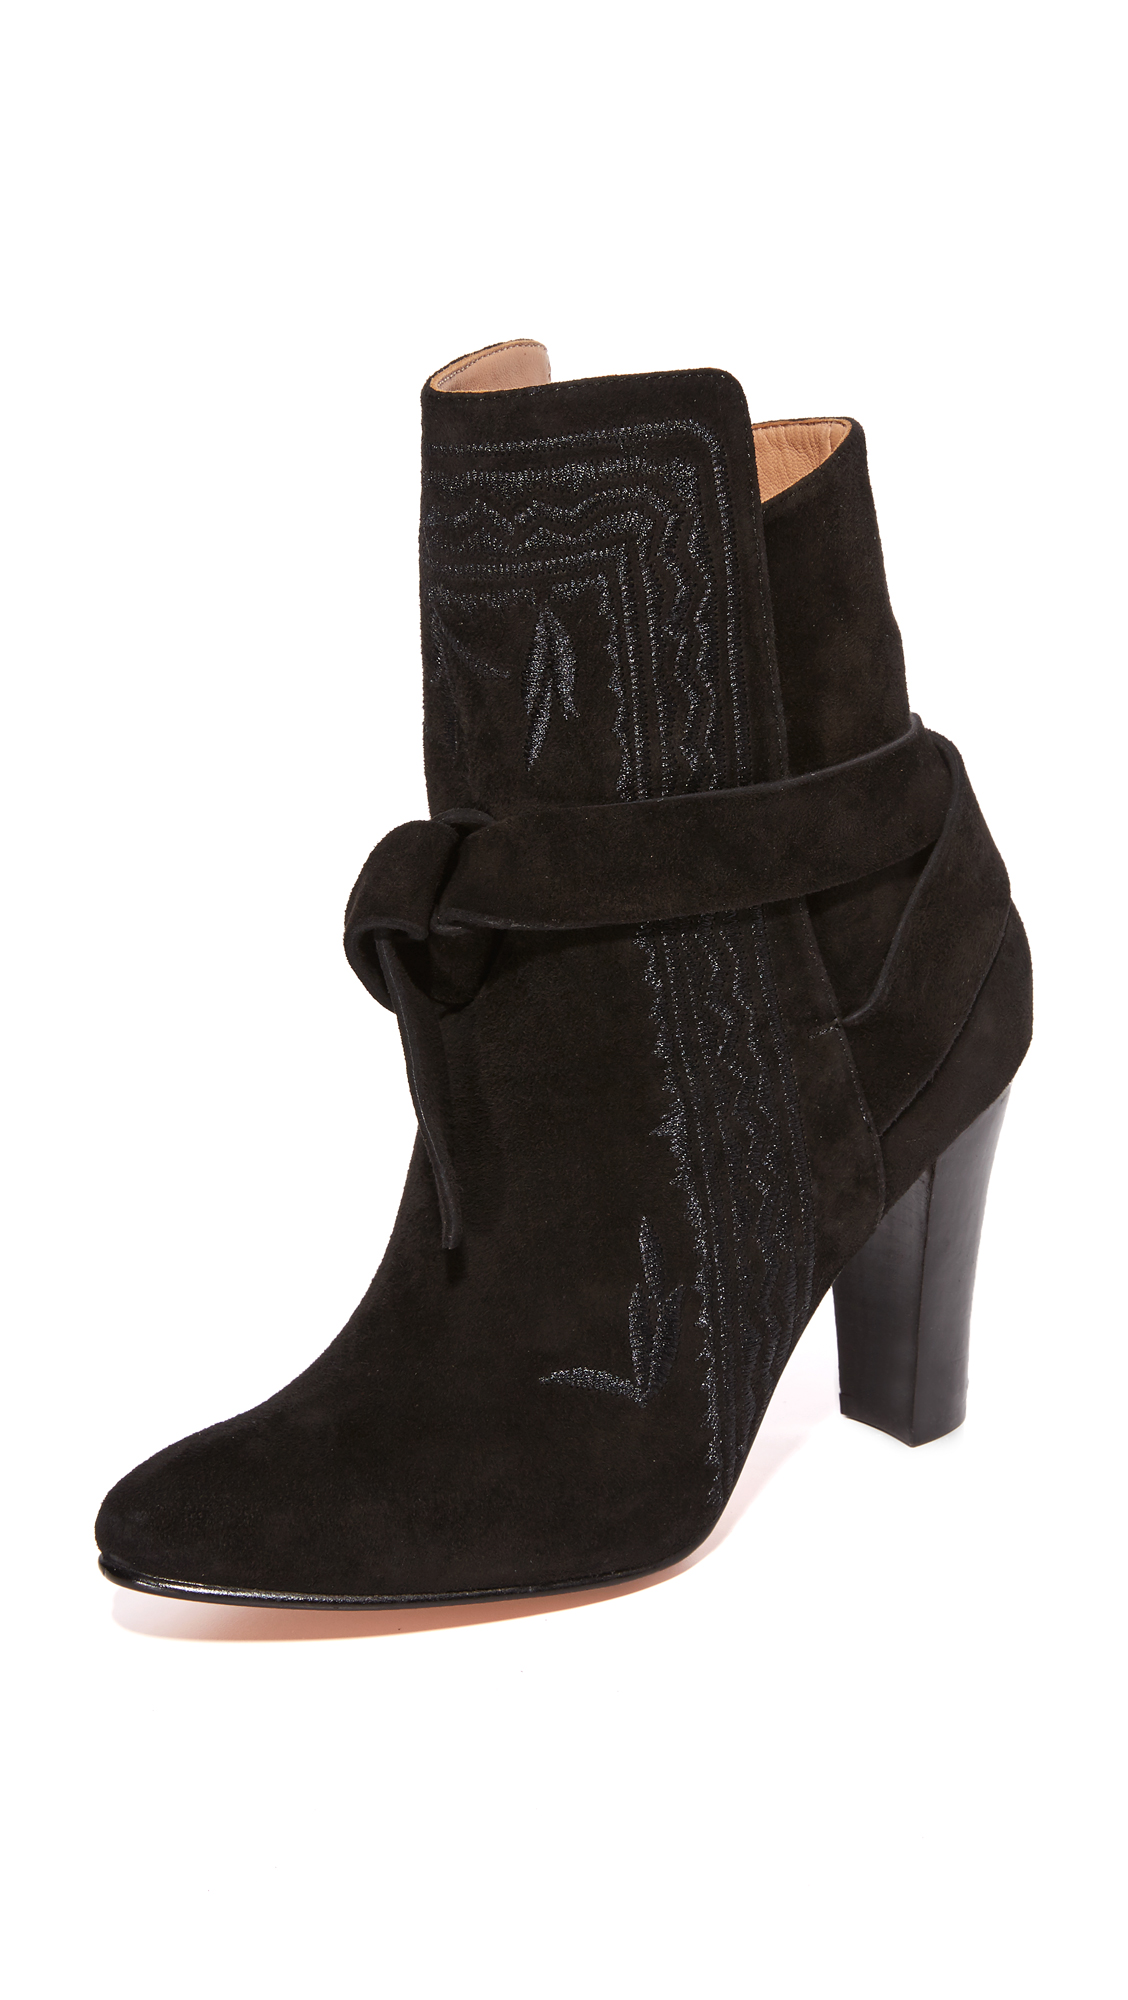 Ulla Johnson Aggie Embroidered Tie Booties - Jet